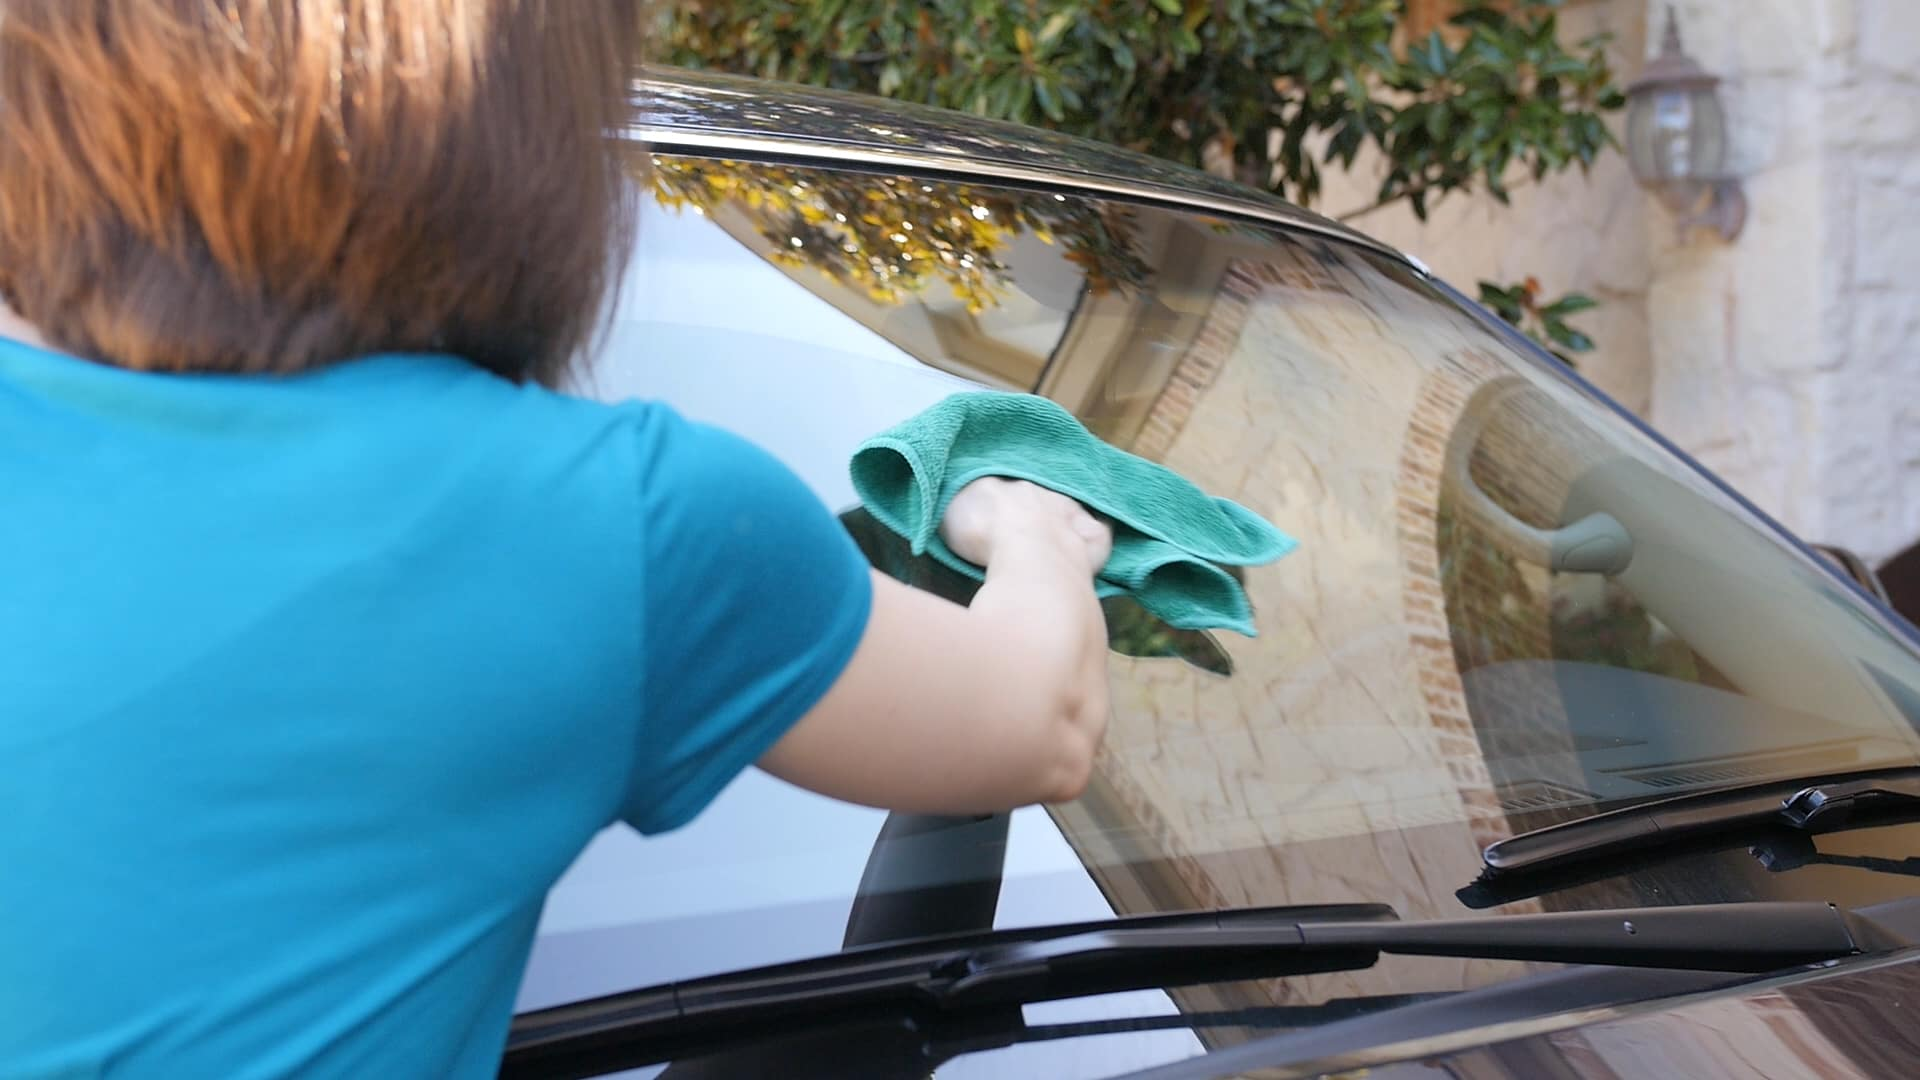 Alfa Romeo Fort Lauderdale Car Cleaning Guide